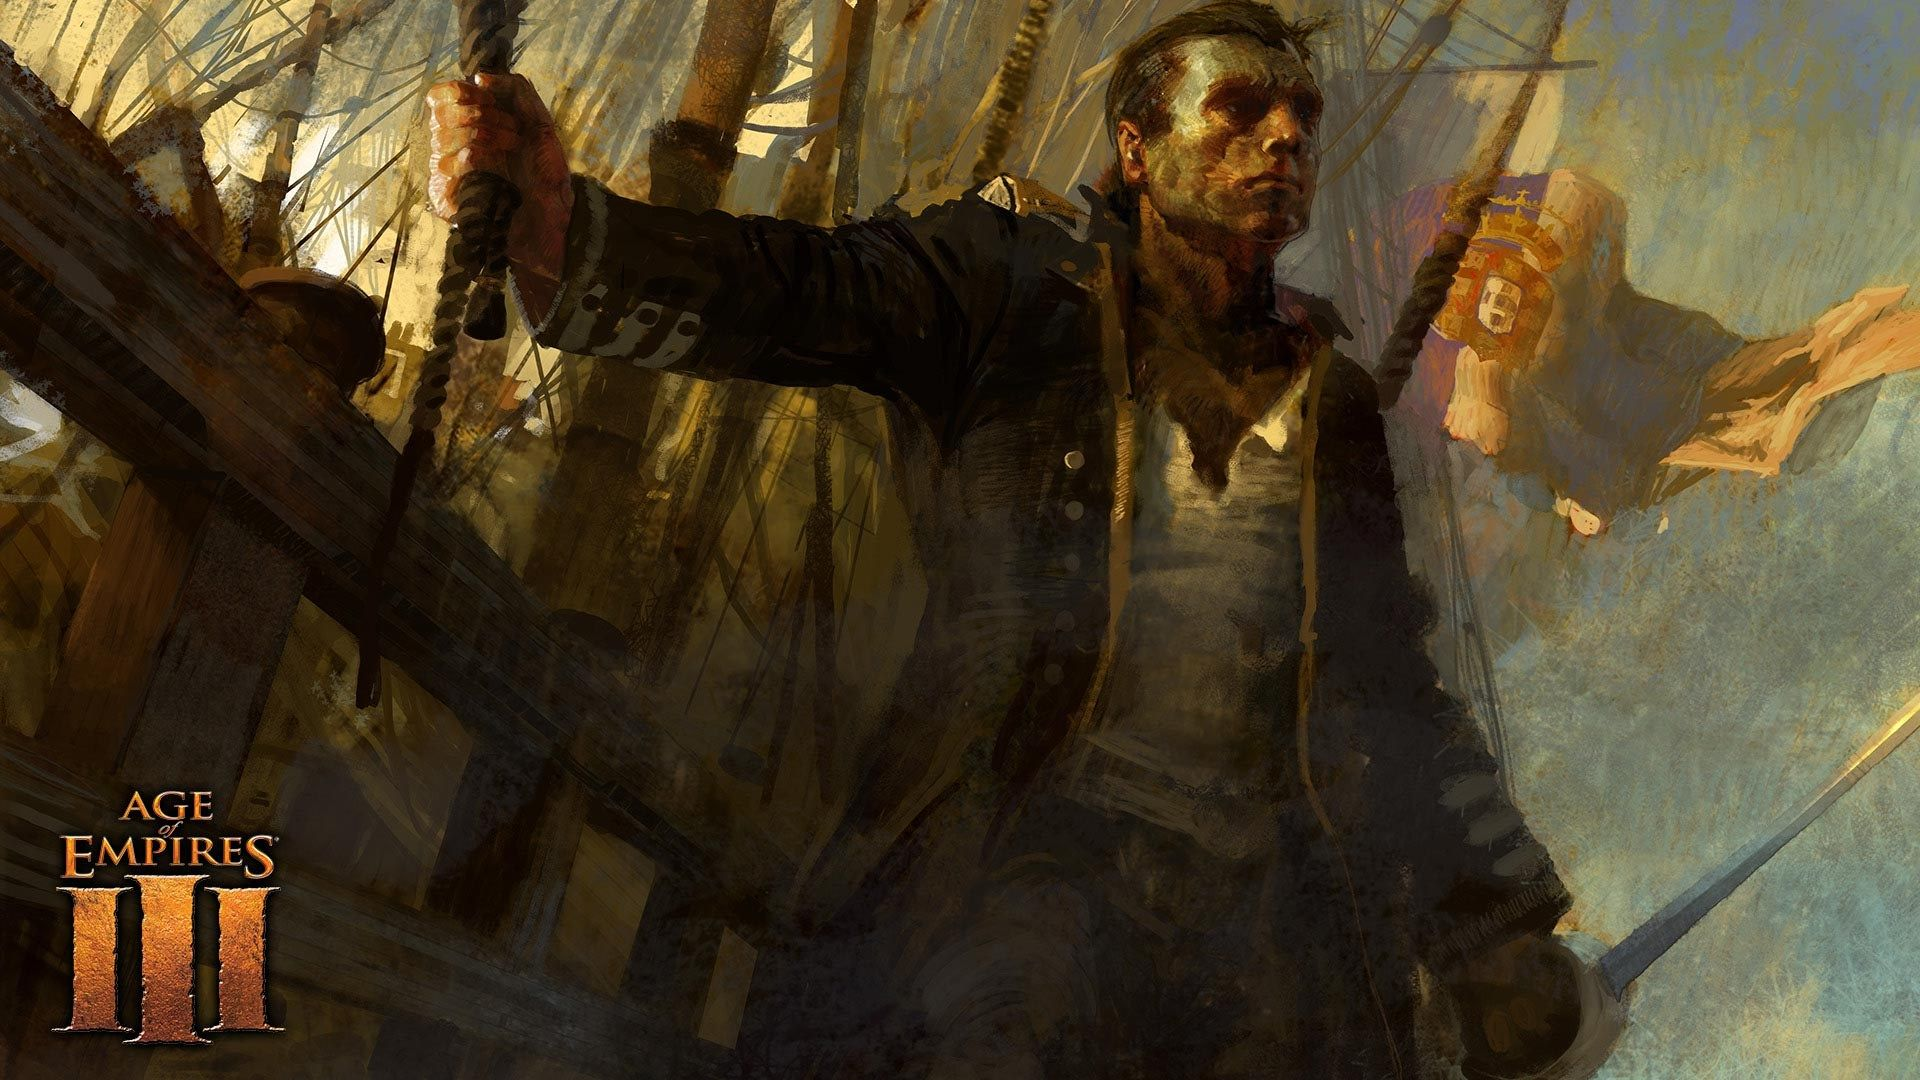 1920x1080 Age Of Empires Iii Game Wallpaper Craig Mullins Age